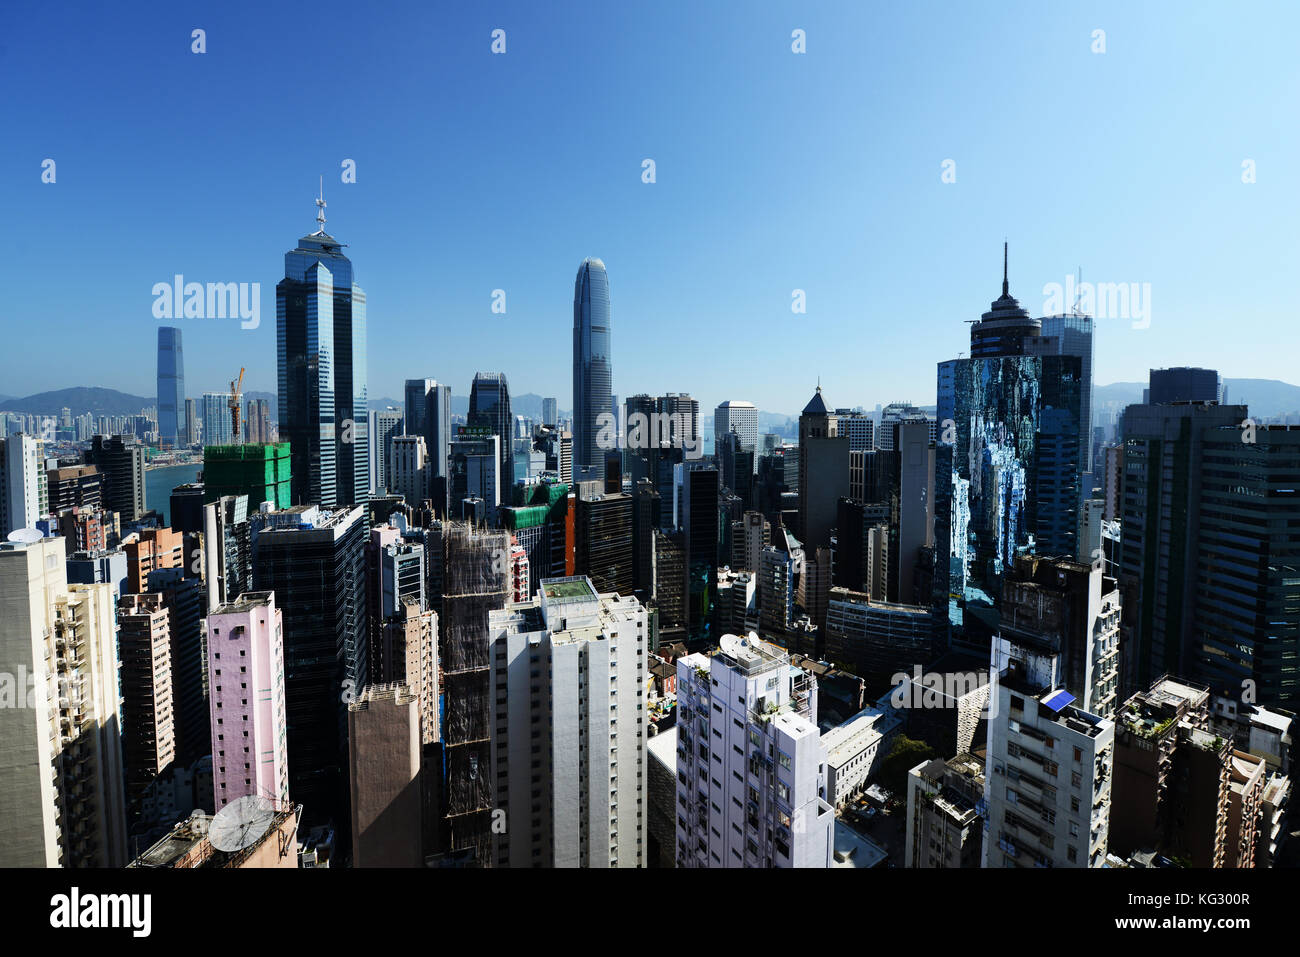 Skyline of Hong Kong's Central District. - Stock Image